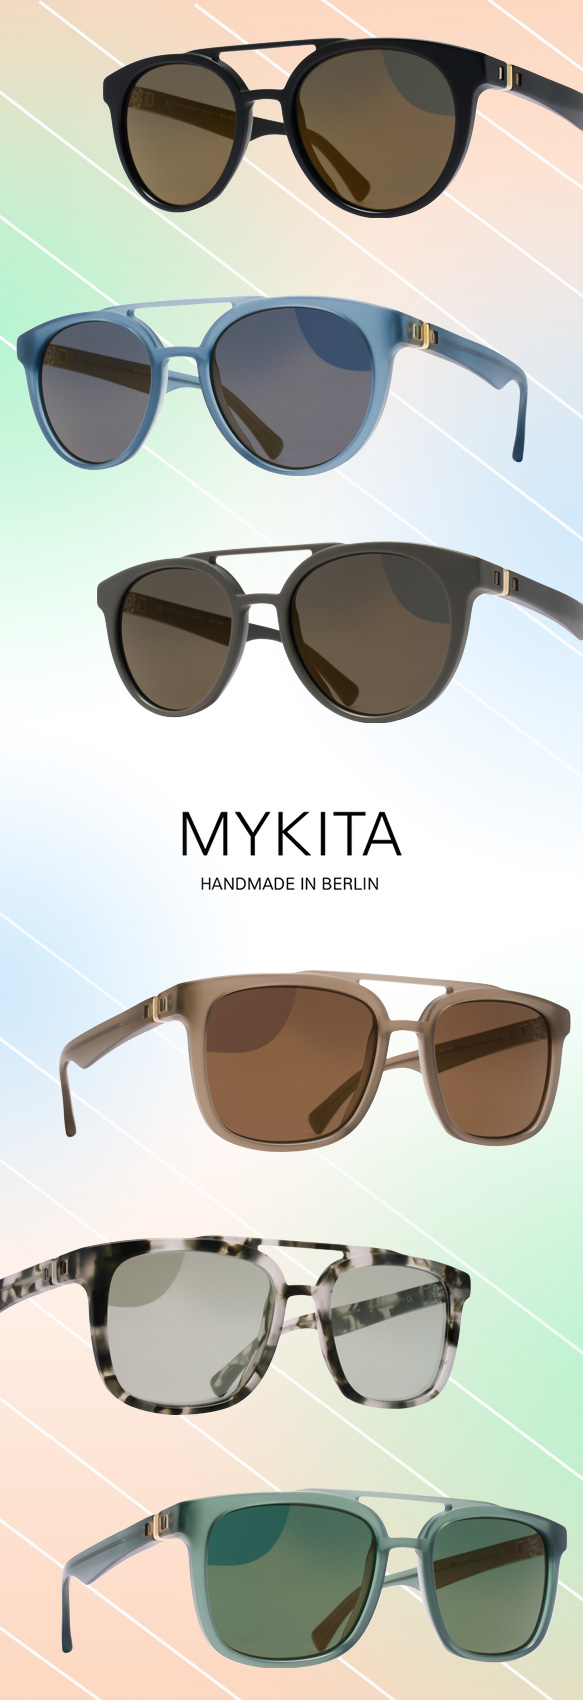 MYKITA (Giles) and MYKITA (Jarvis) in varying colorations